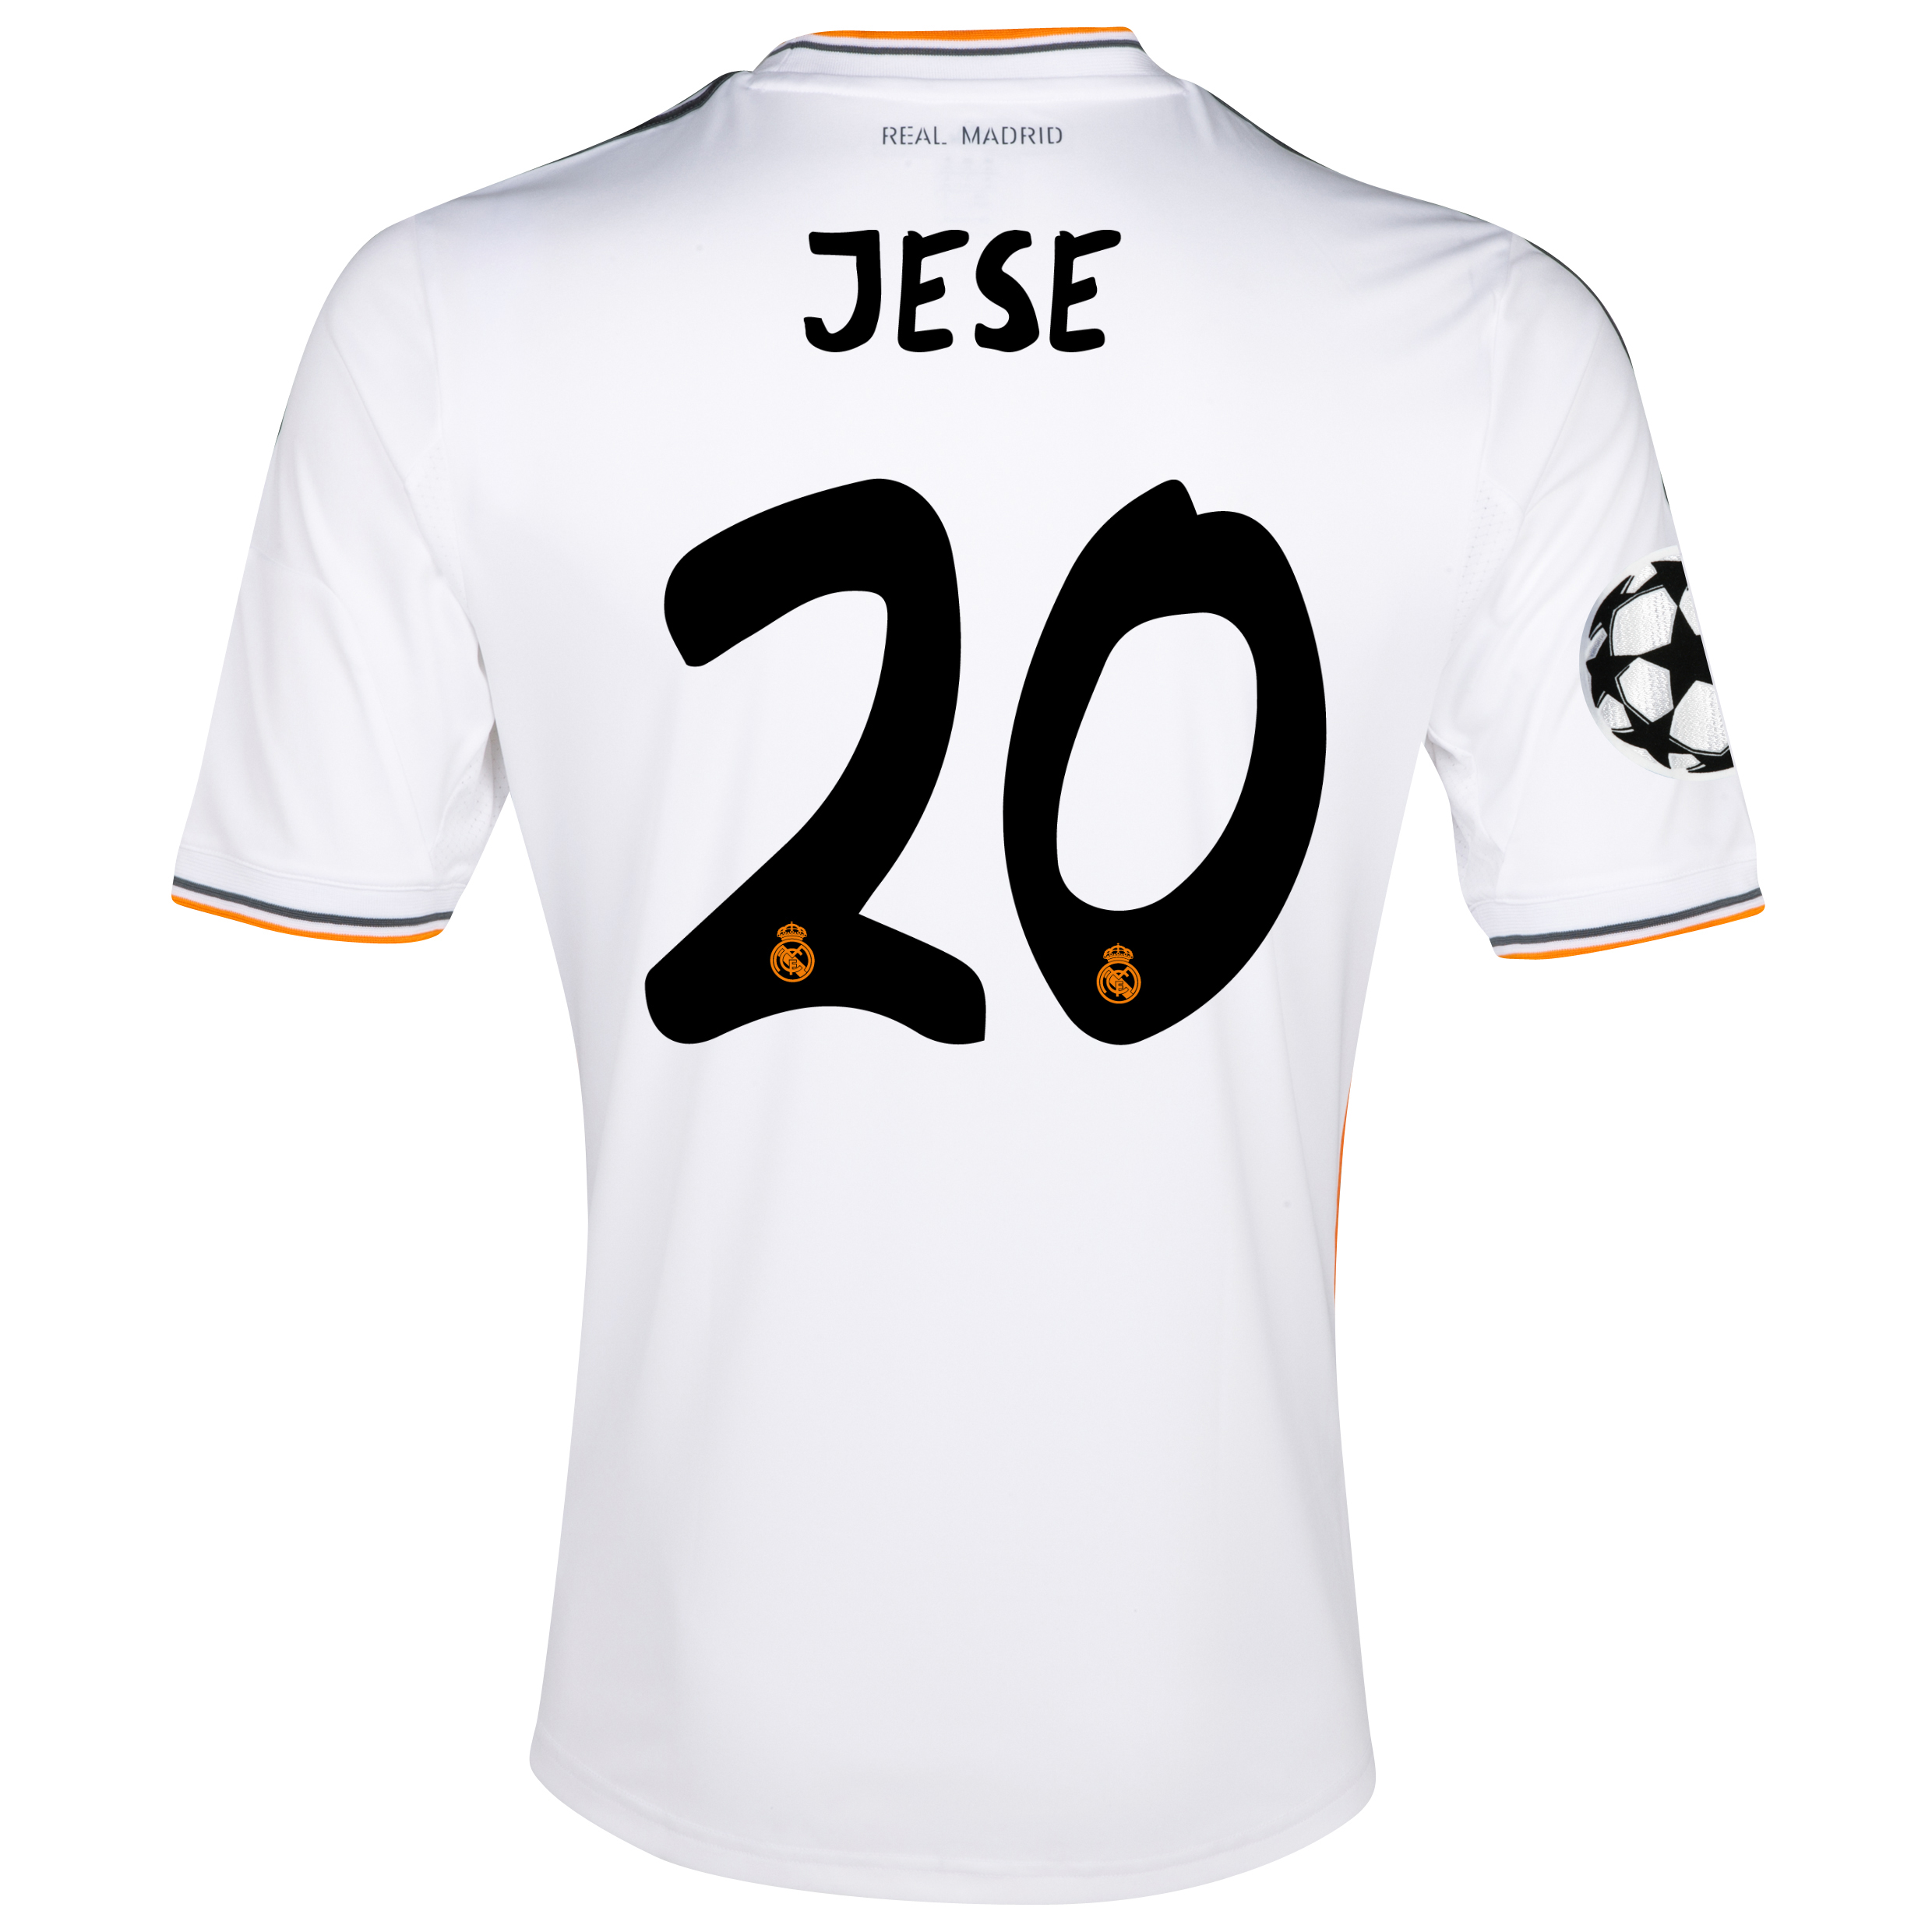 Real Madrid UEFA Champions League Home Shirt 2013/14 with Jese 20 printing